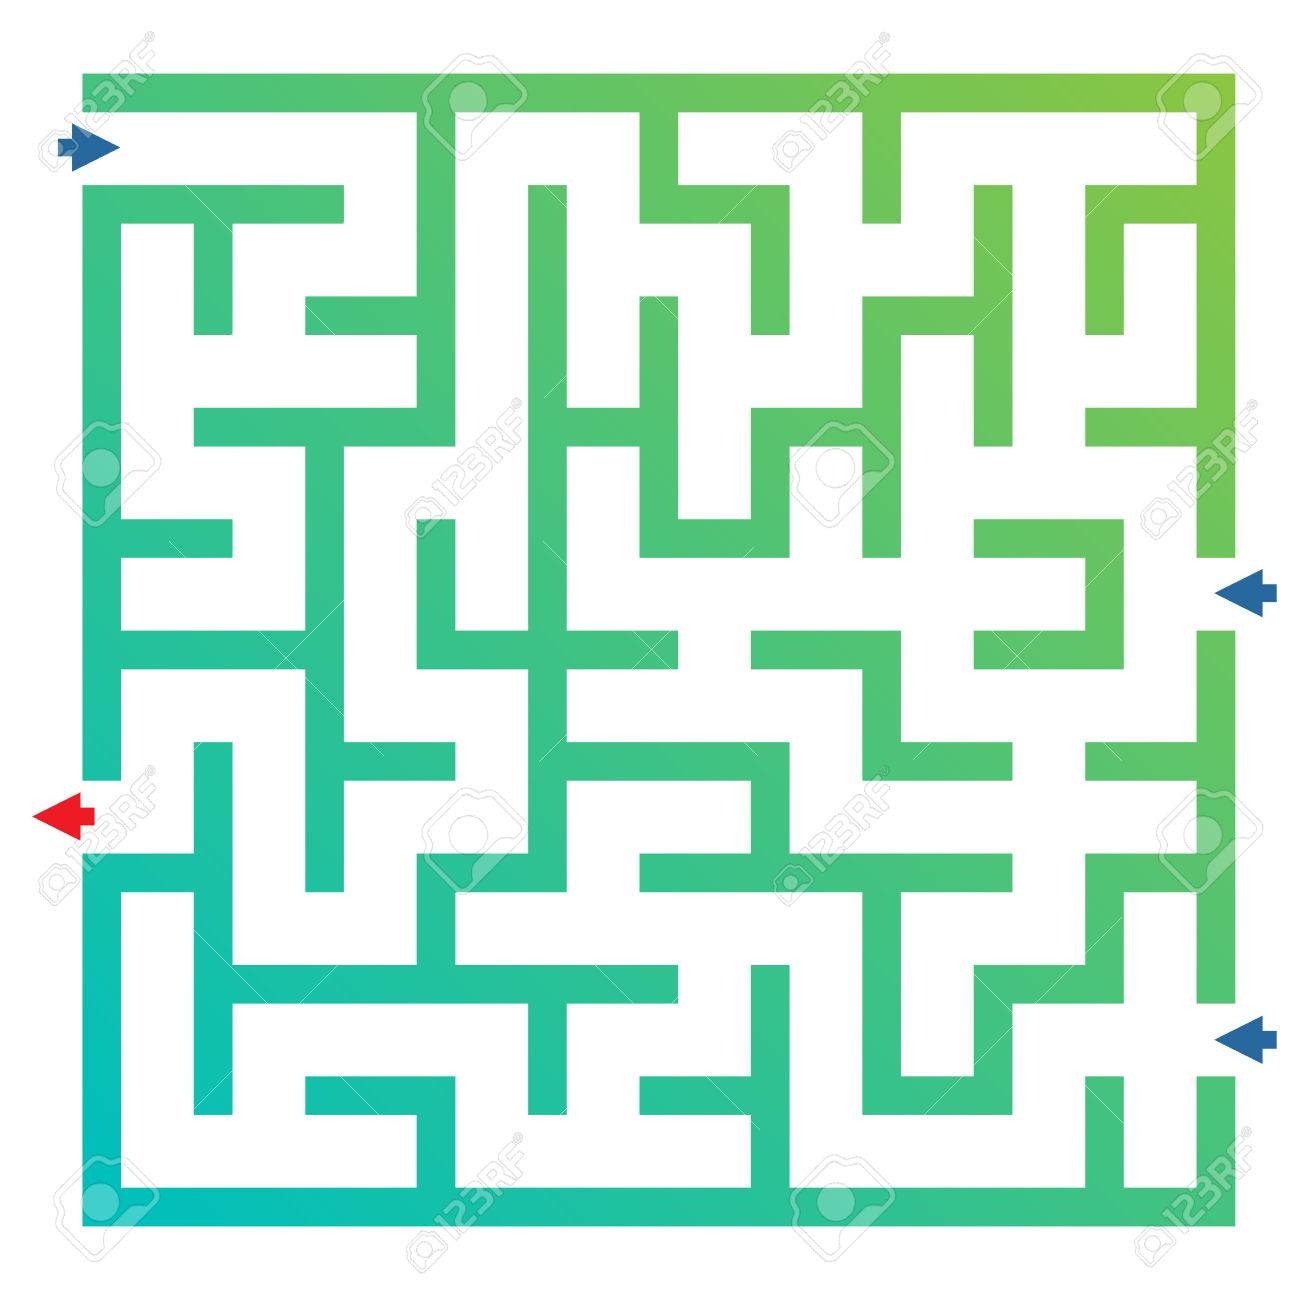 labyrinth for preschool children funny maze game for child royalty